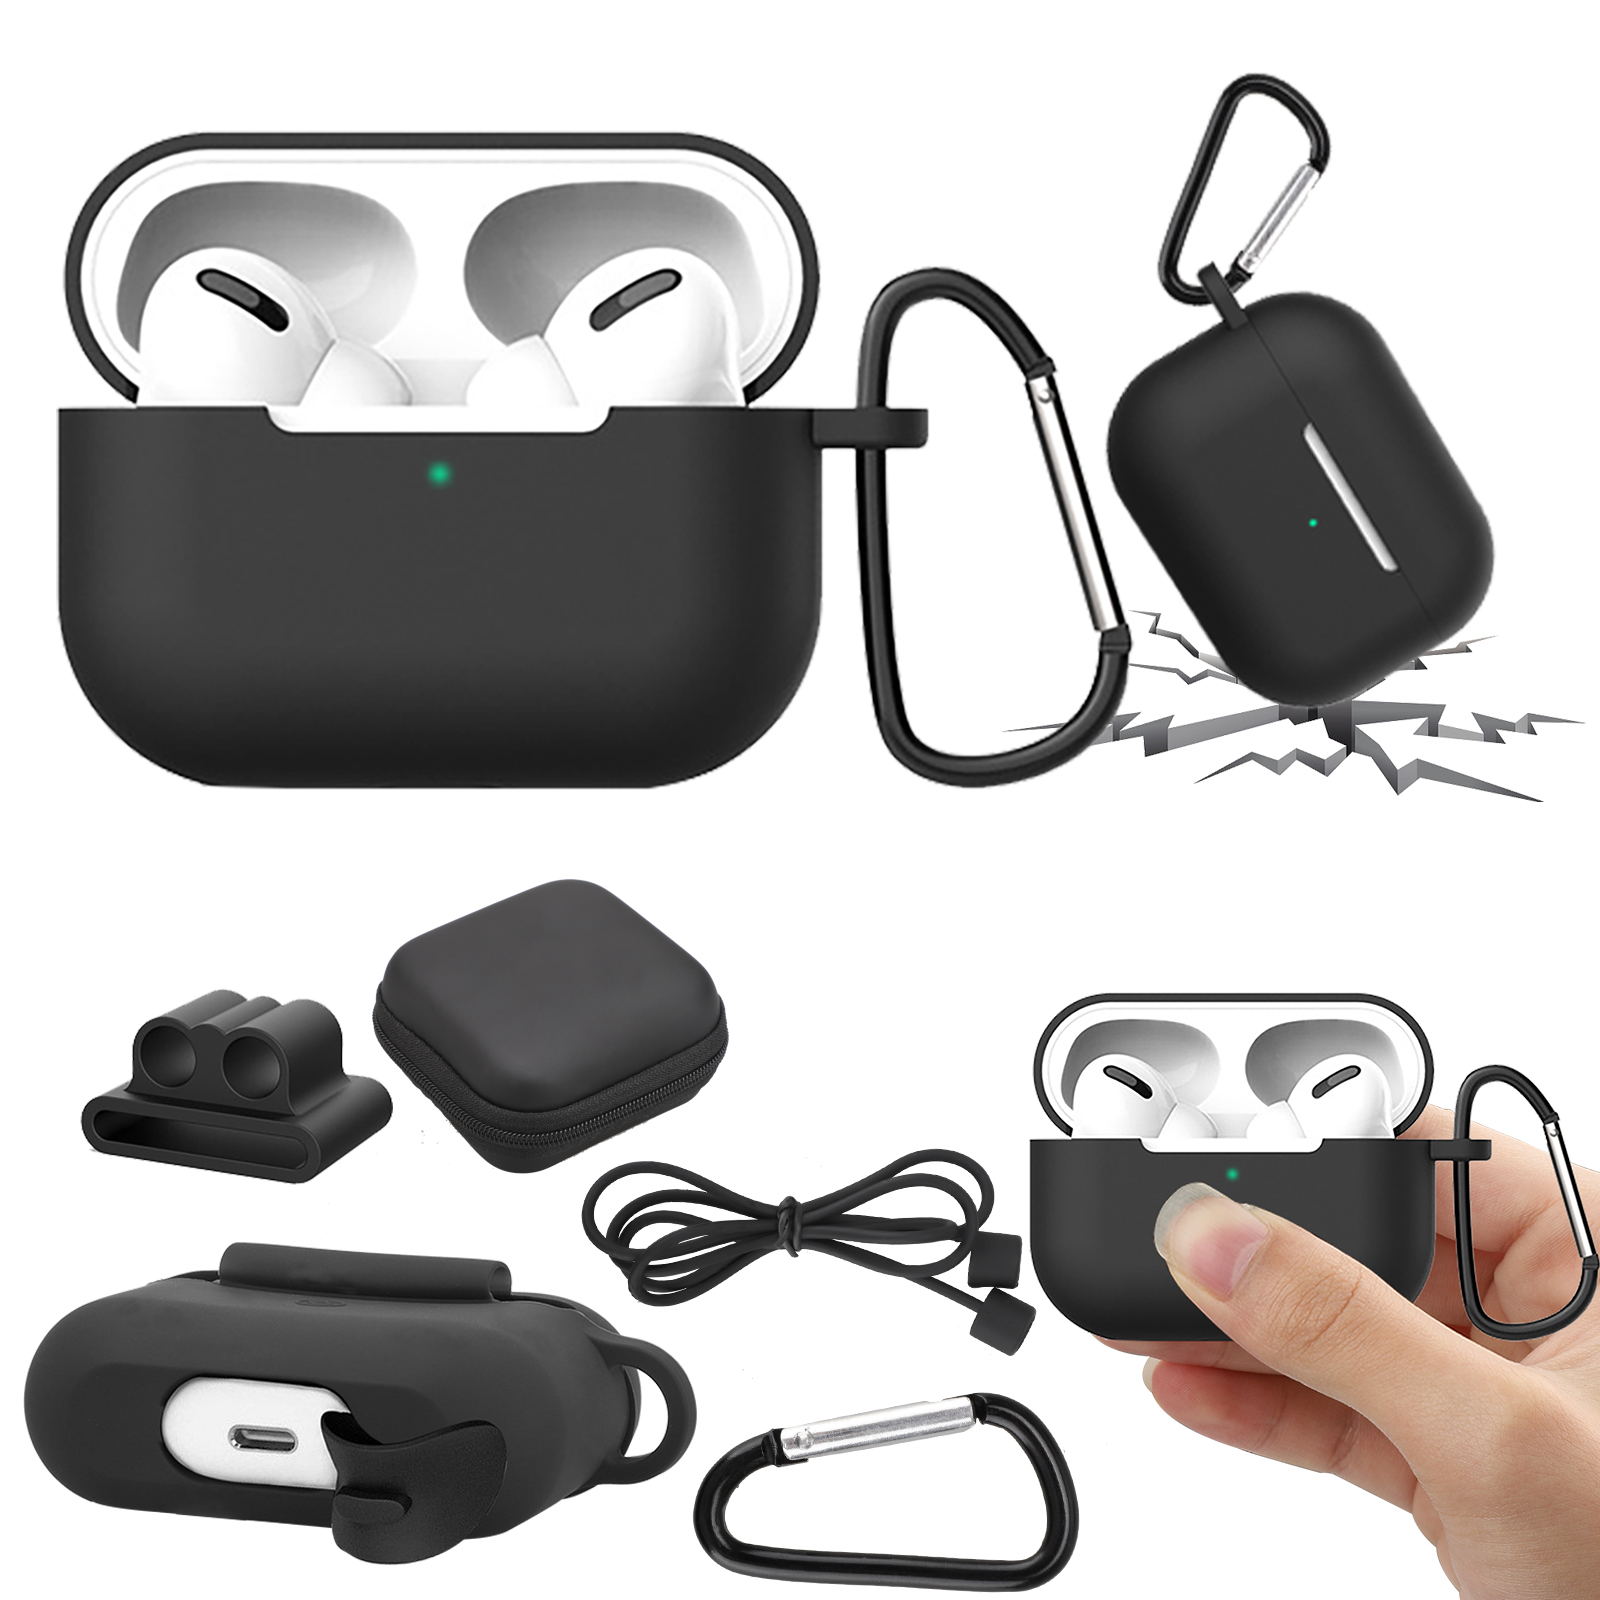 Compatible With Airpods Pro Case 5 In 1 Accessories Kit